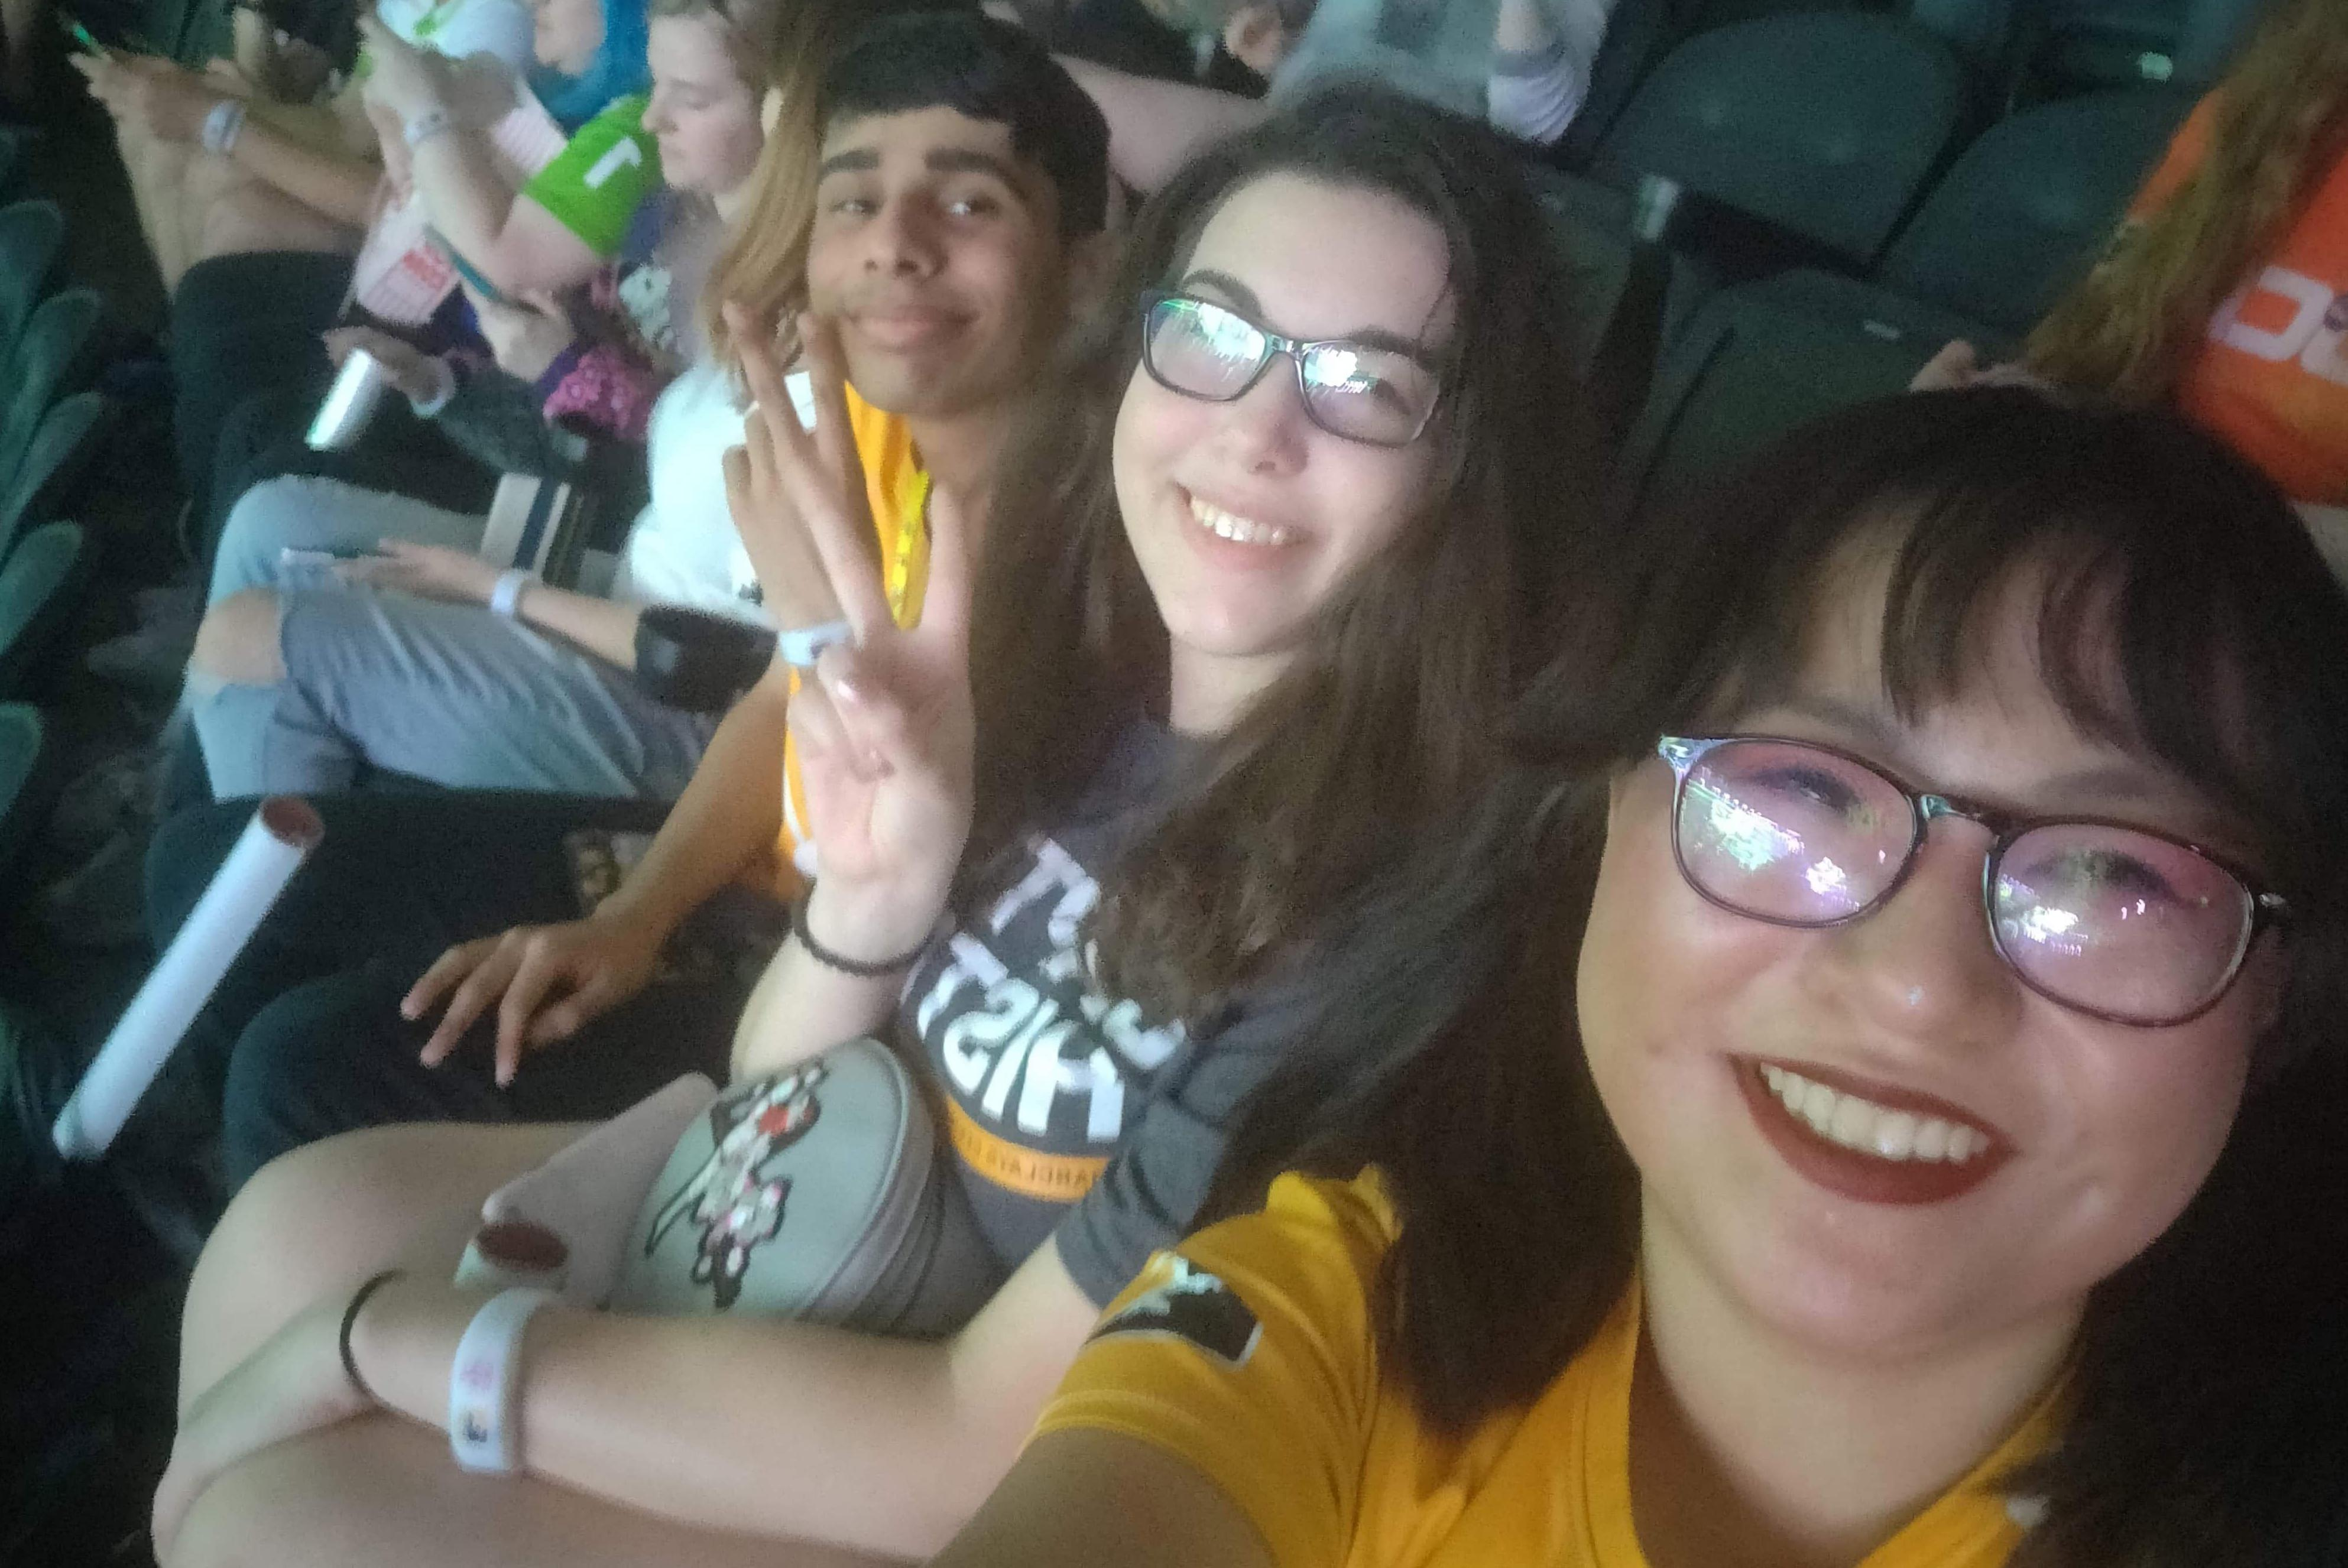 Two female students and one male student sitting in the Wells Fargo Stadium.